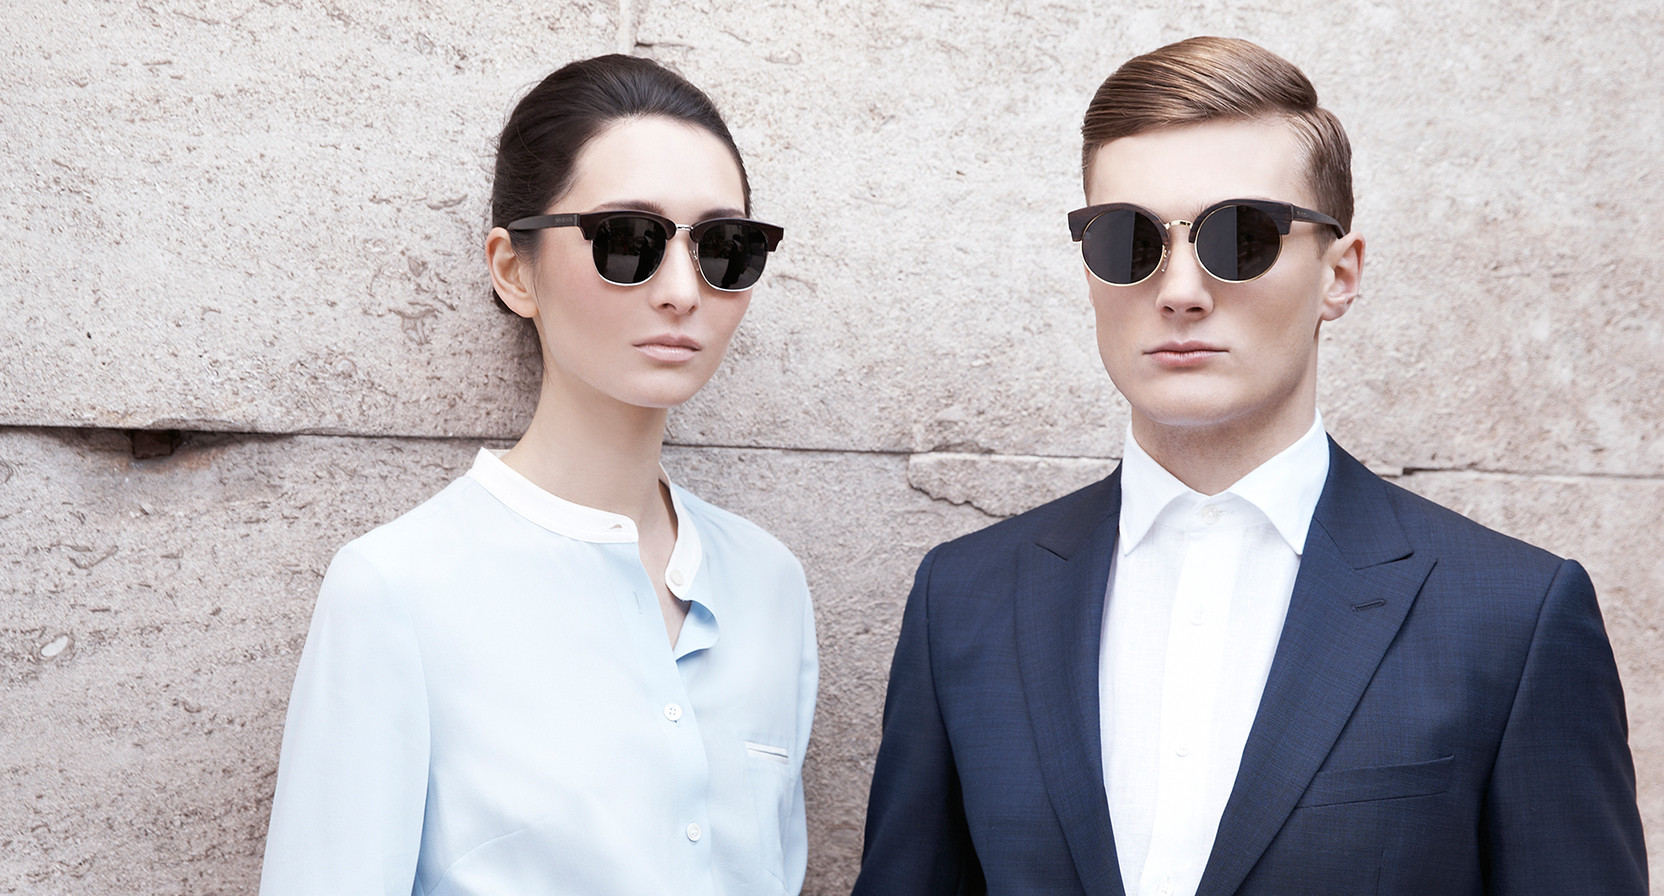 Finlay & Co. - Iconic British Eyewear – Handcrafted Wooden Sunglasses